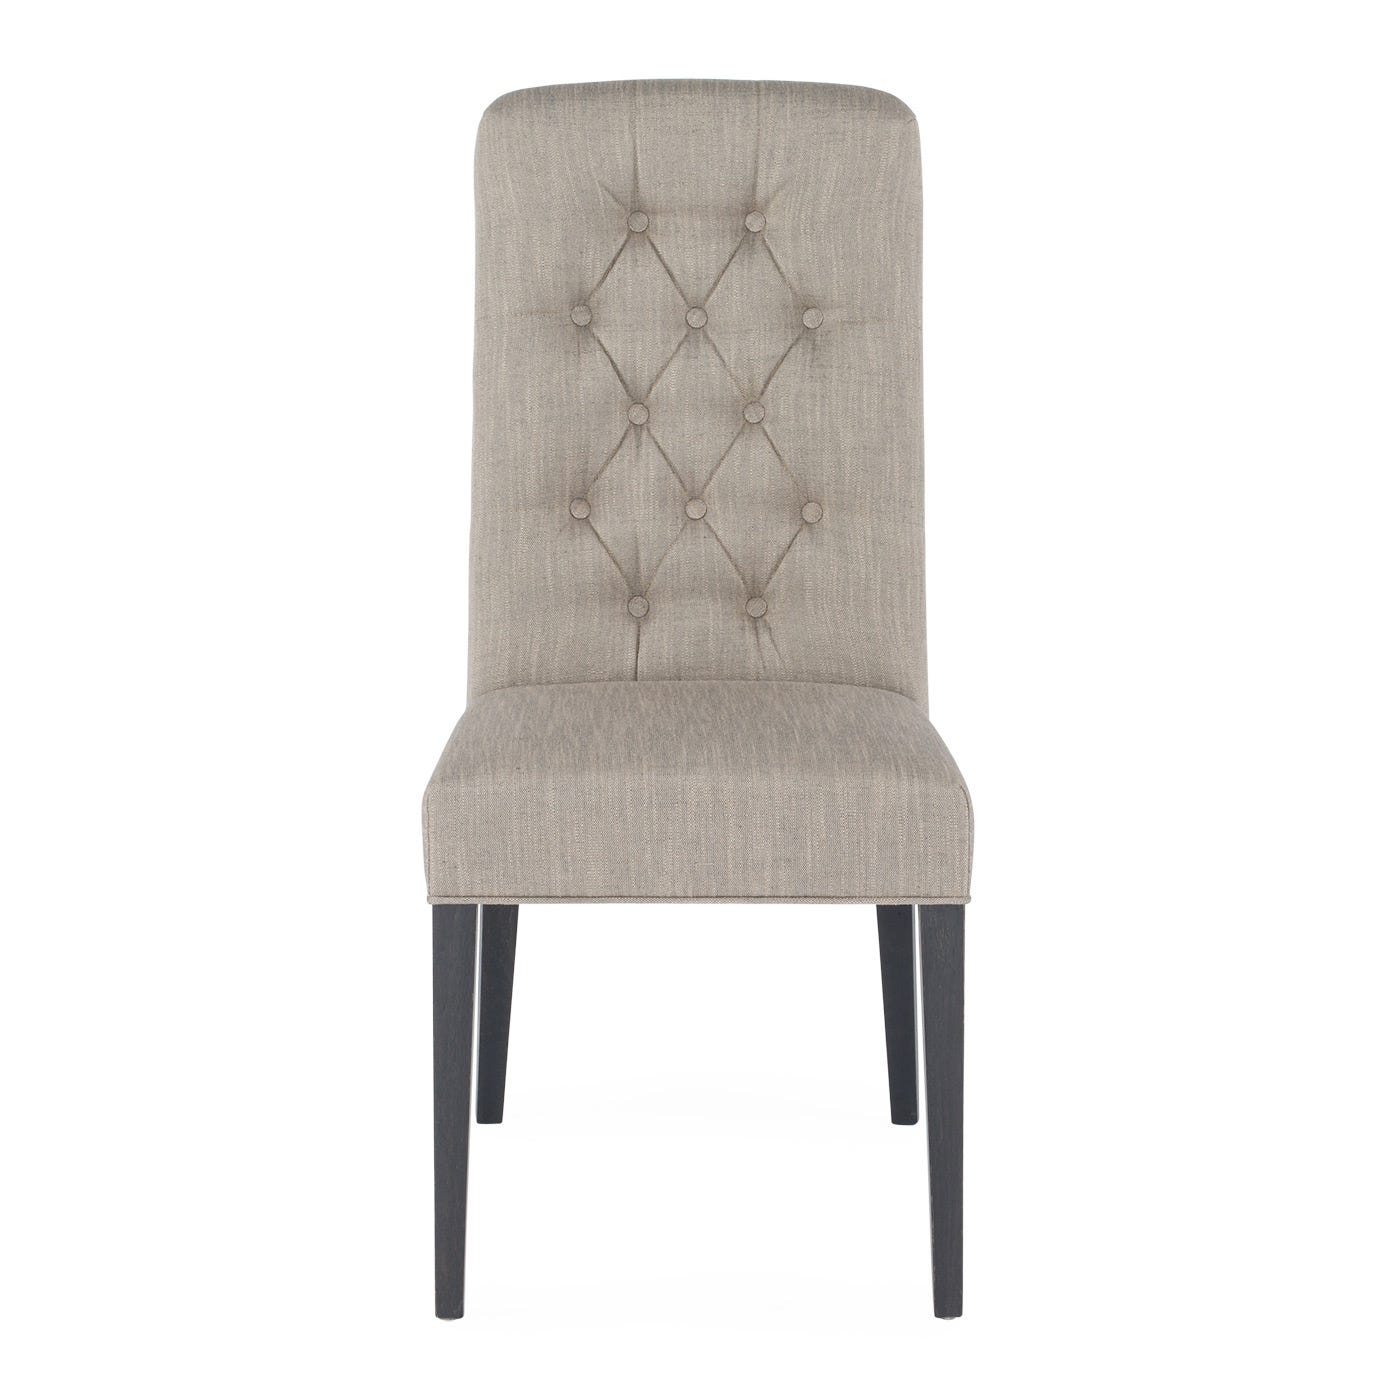 Chartwell Pair of Upholstered Dining Chairs